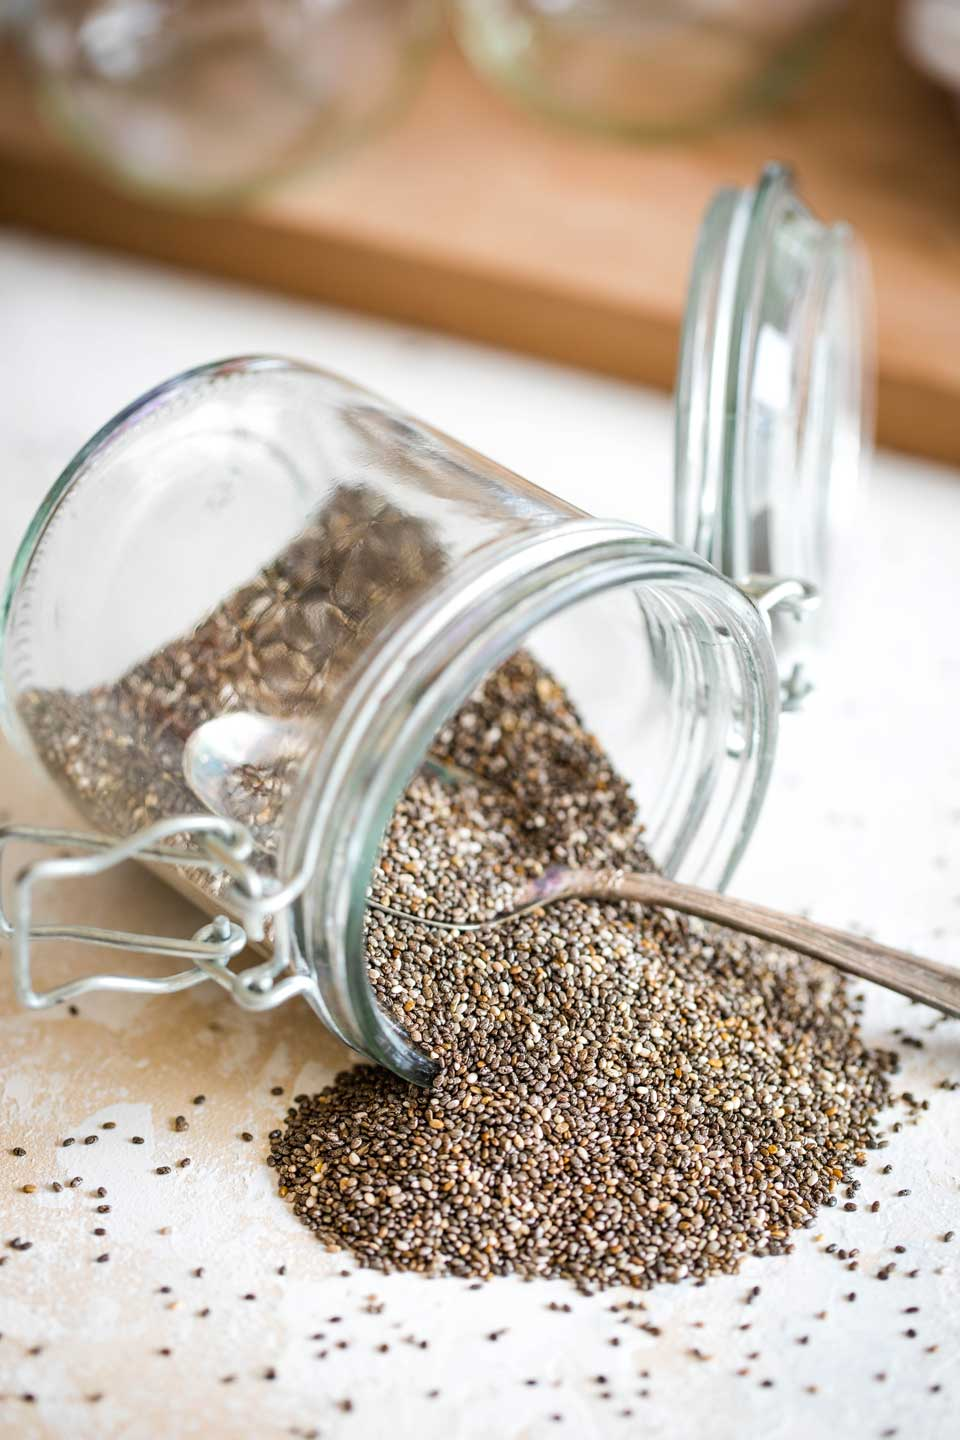 Jar of chia seeds, dumped over sideways with seeds spilling out